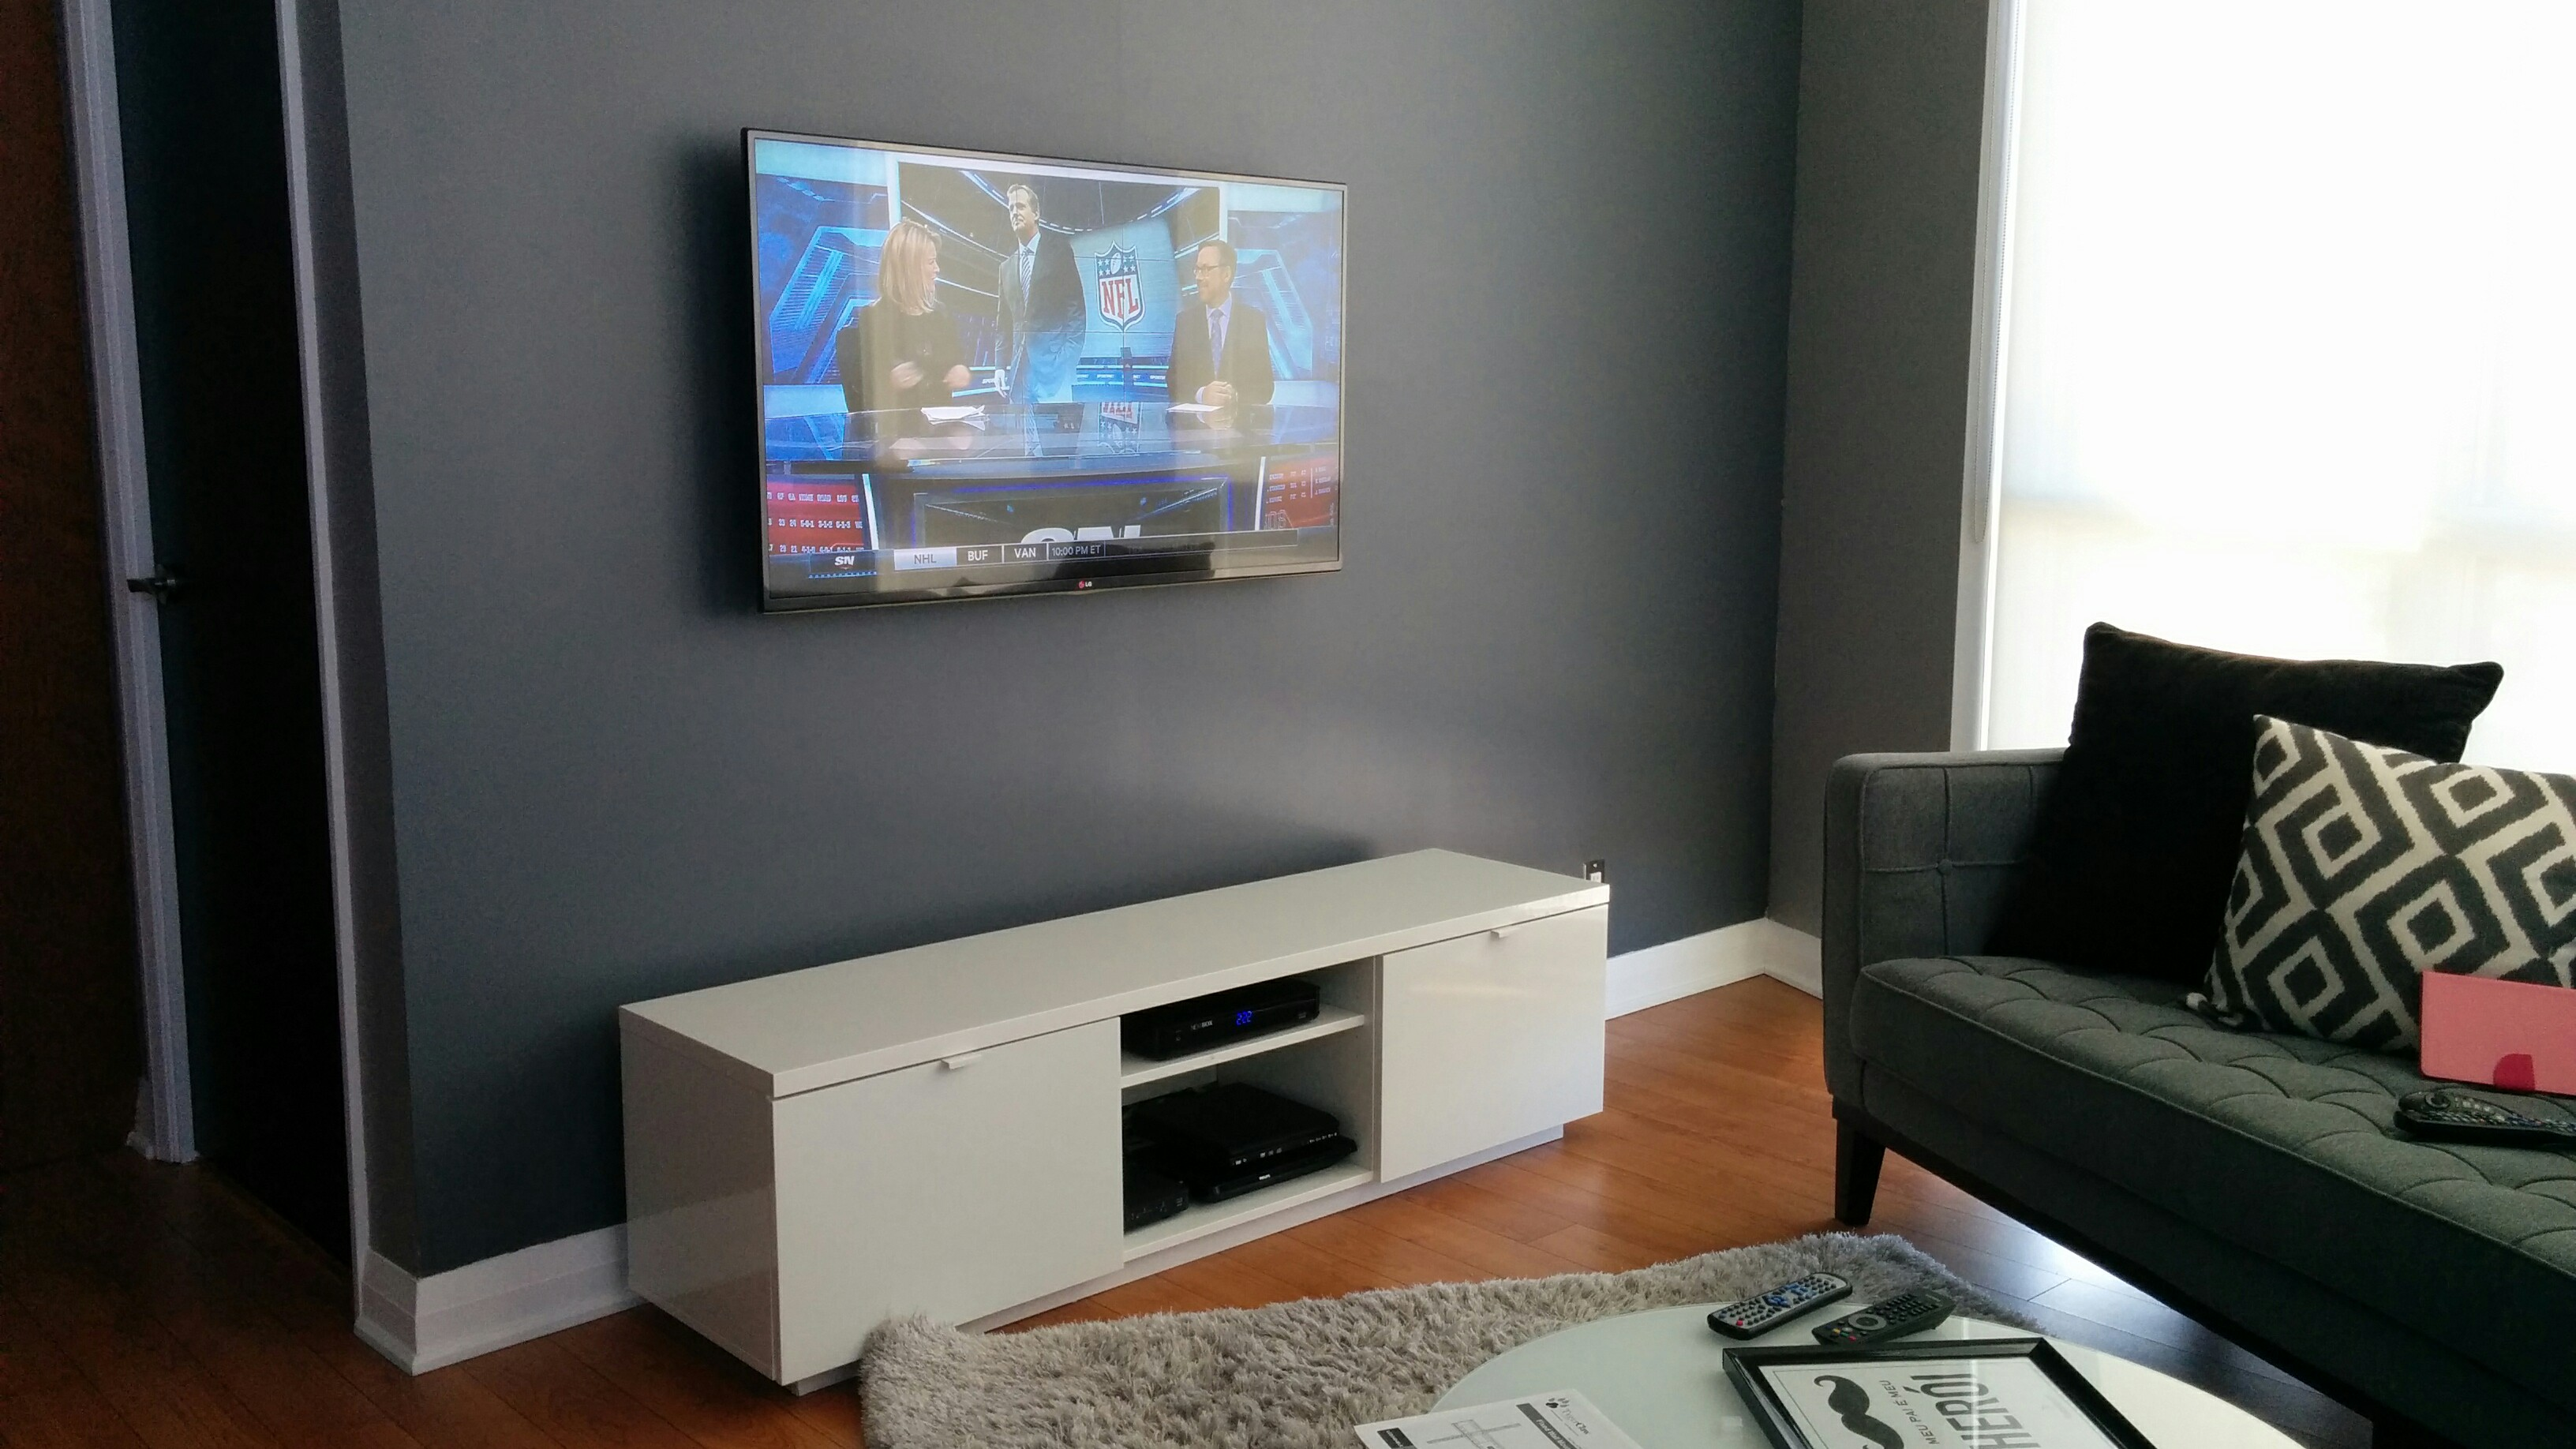 We Will Be Offering A Solution To Source, Assemble And Perform The  Installation Of Your Wall Mounted TV And Media Shelve Under The TV To Make  Your Loving ...